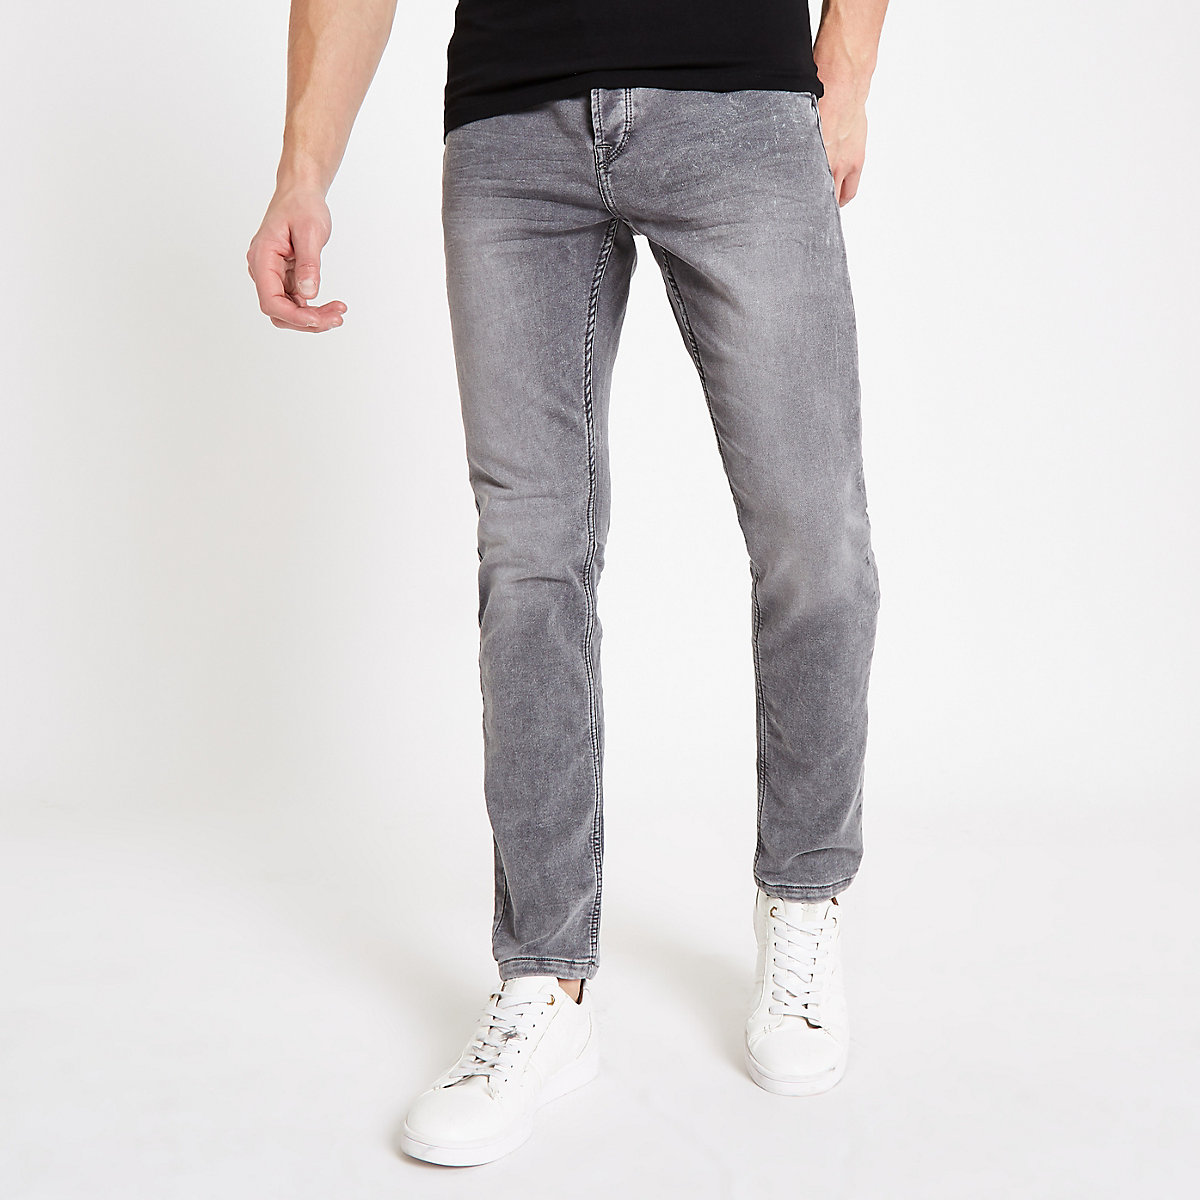 Only & Sons grey wash jeans